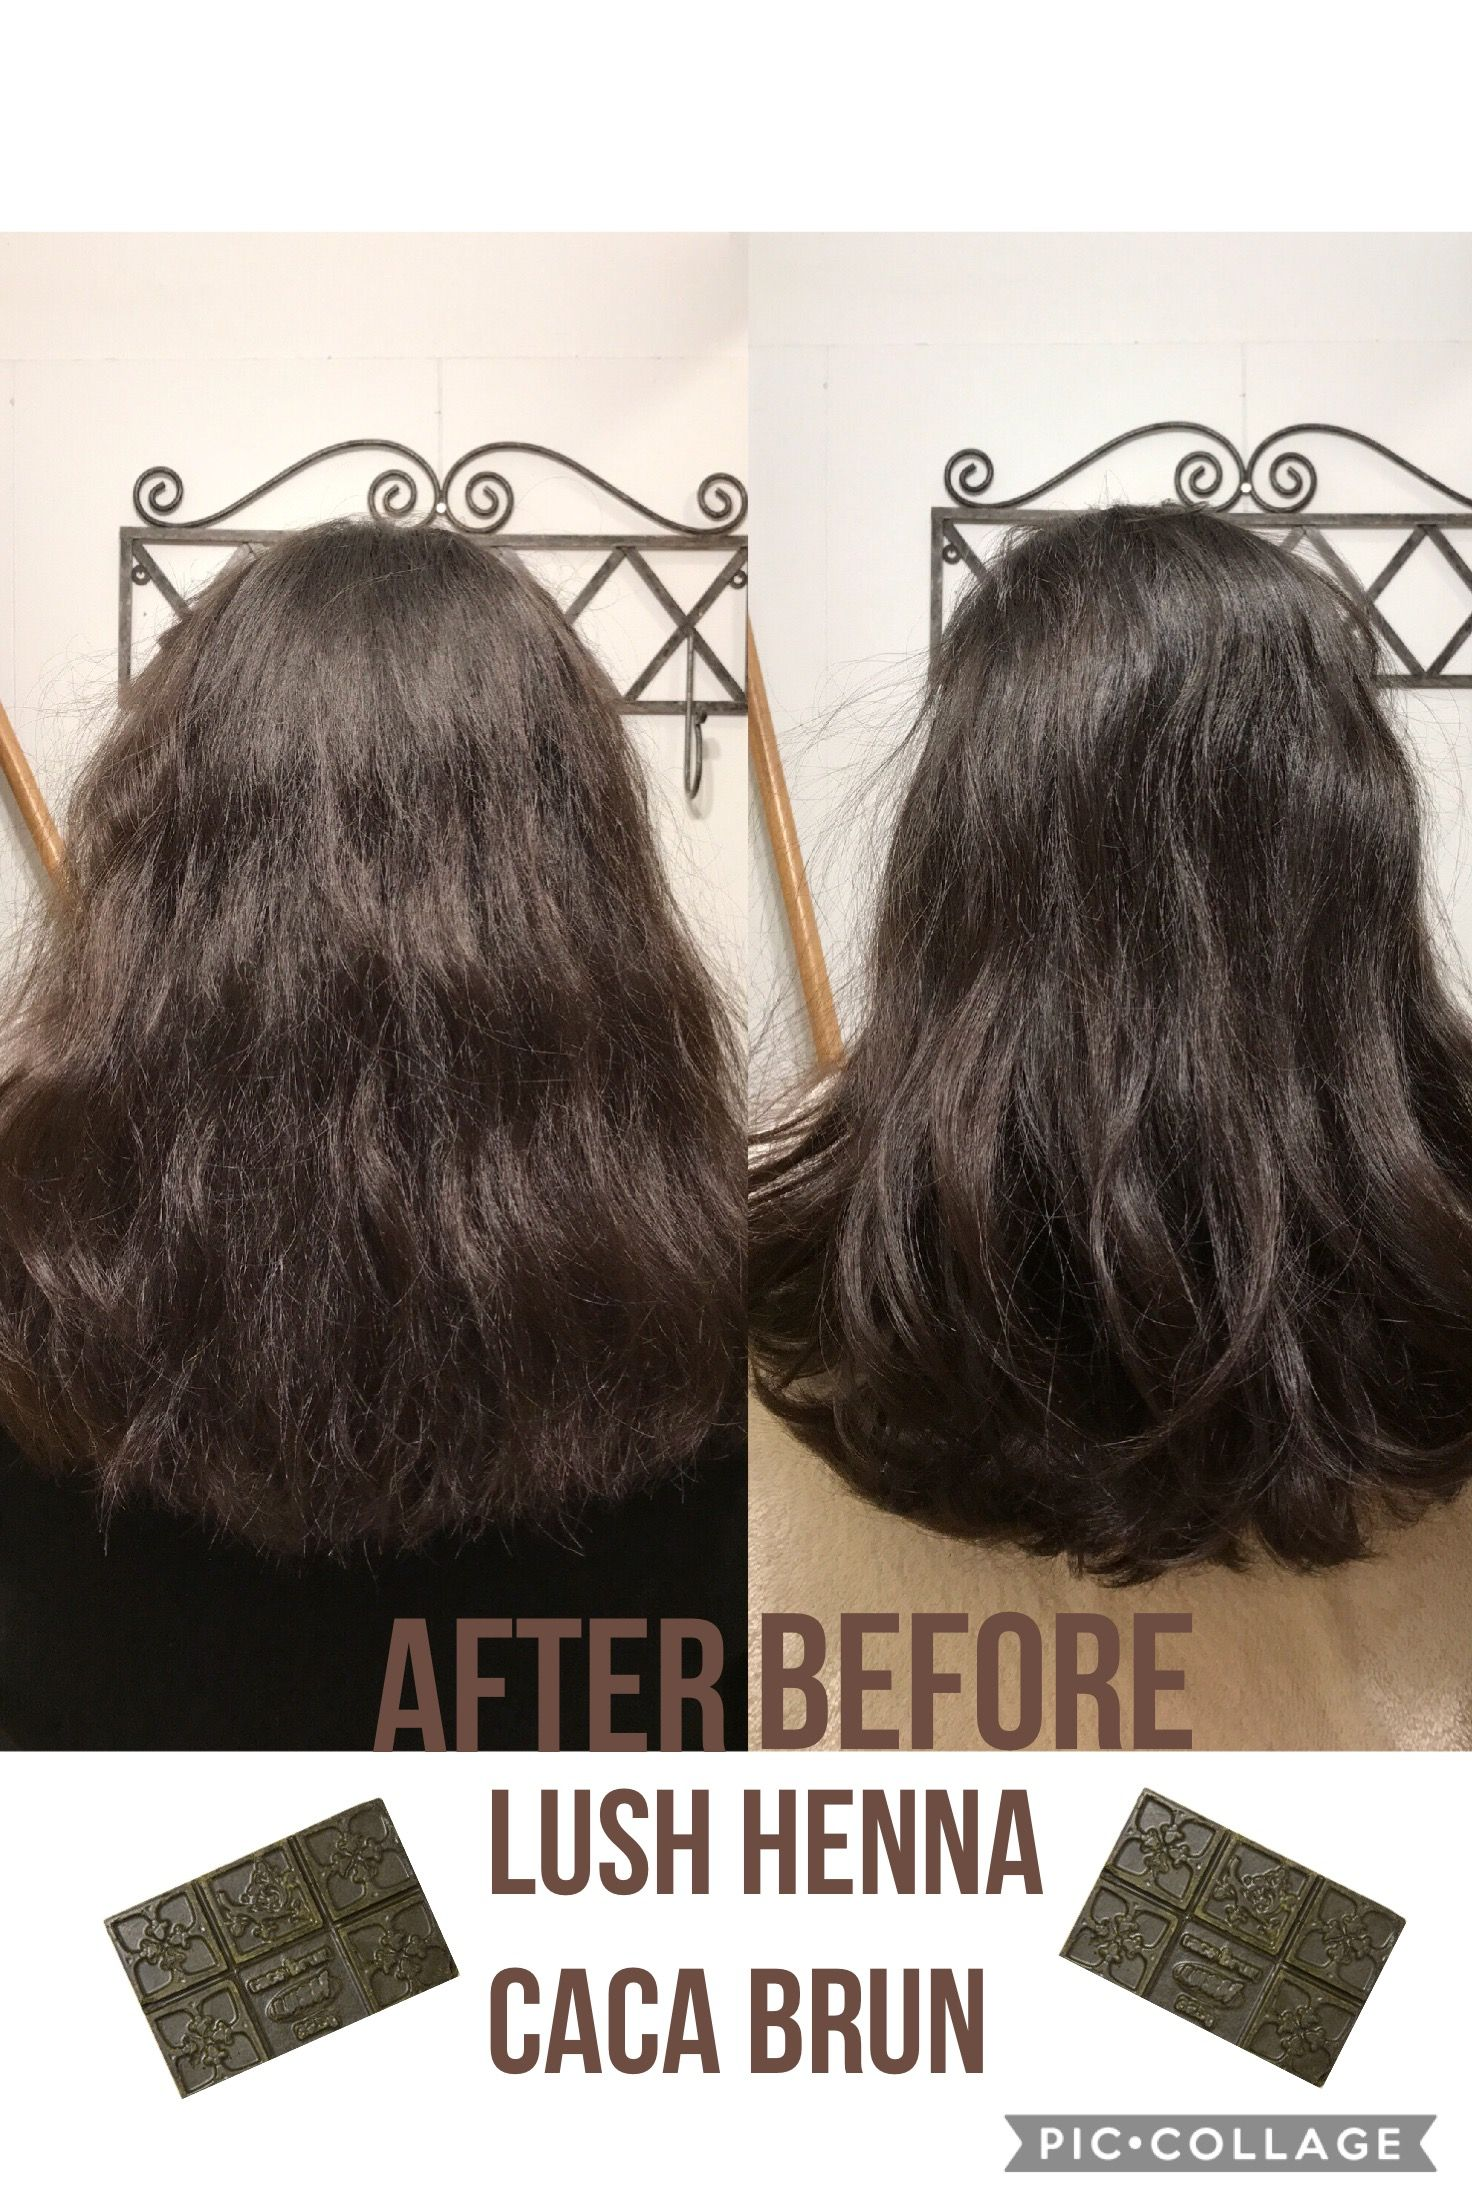 Lush Henna Caca Brun Hairstyles Pinterest Henna Hair Cuts And